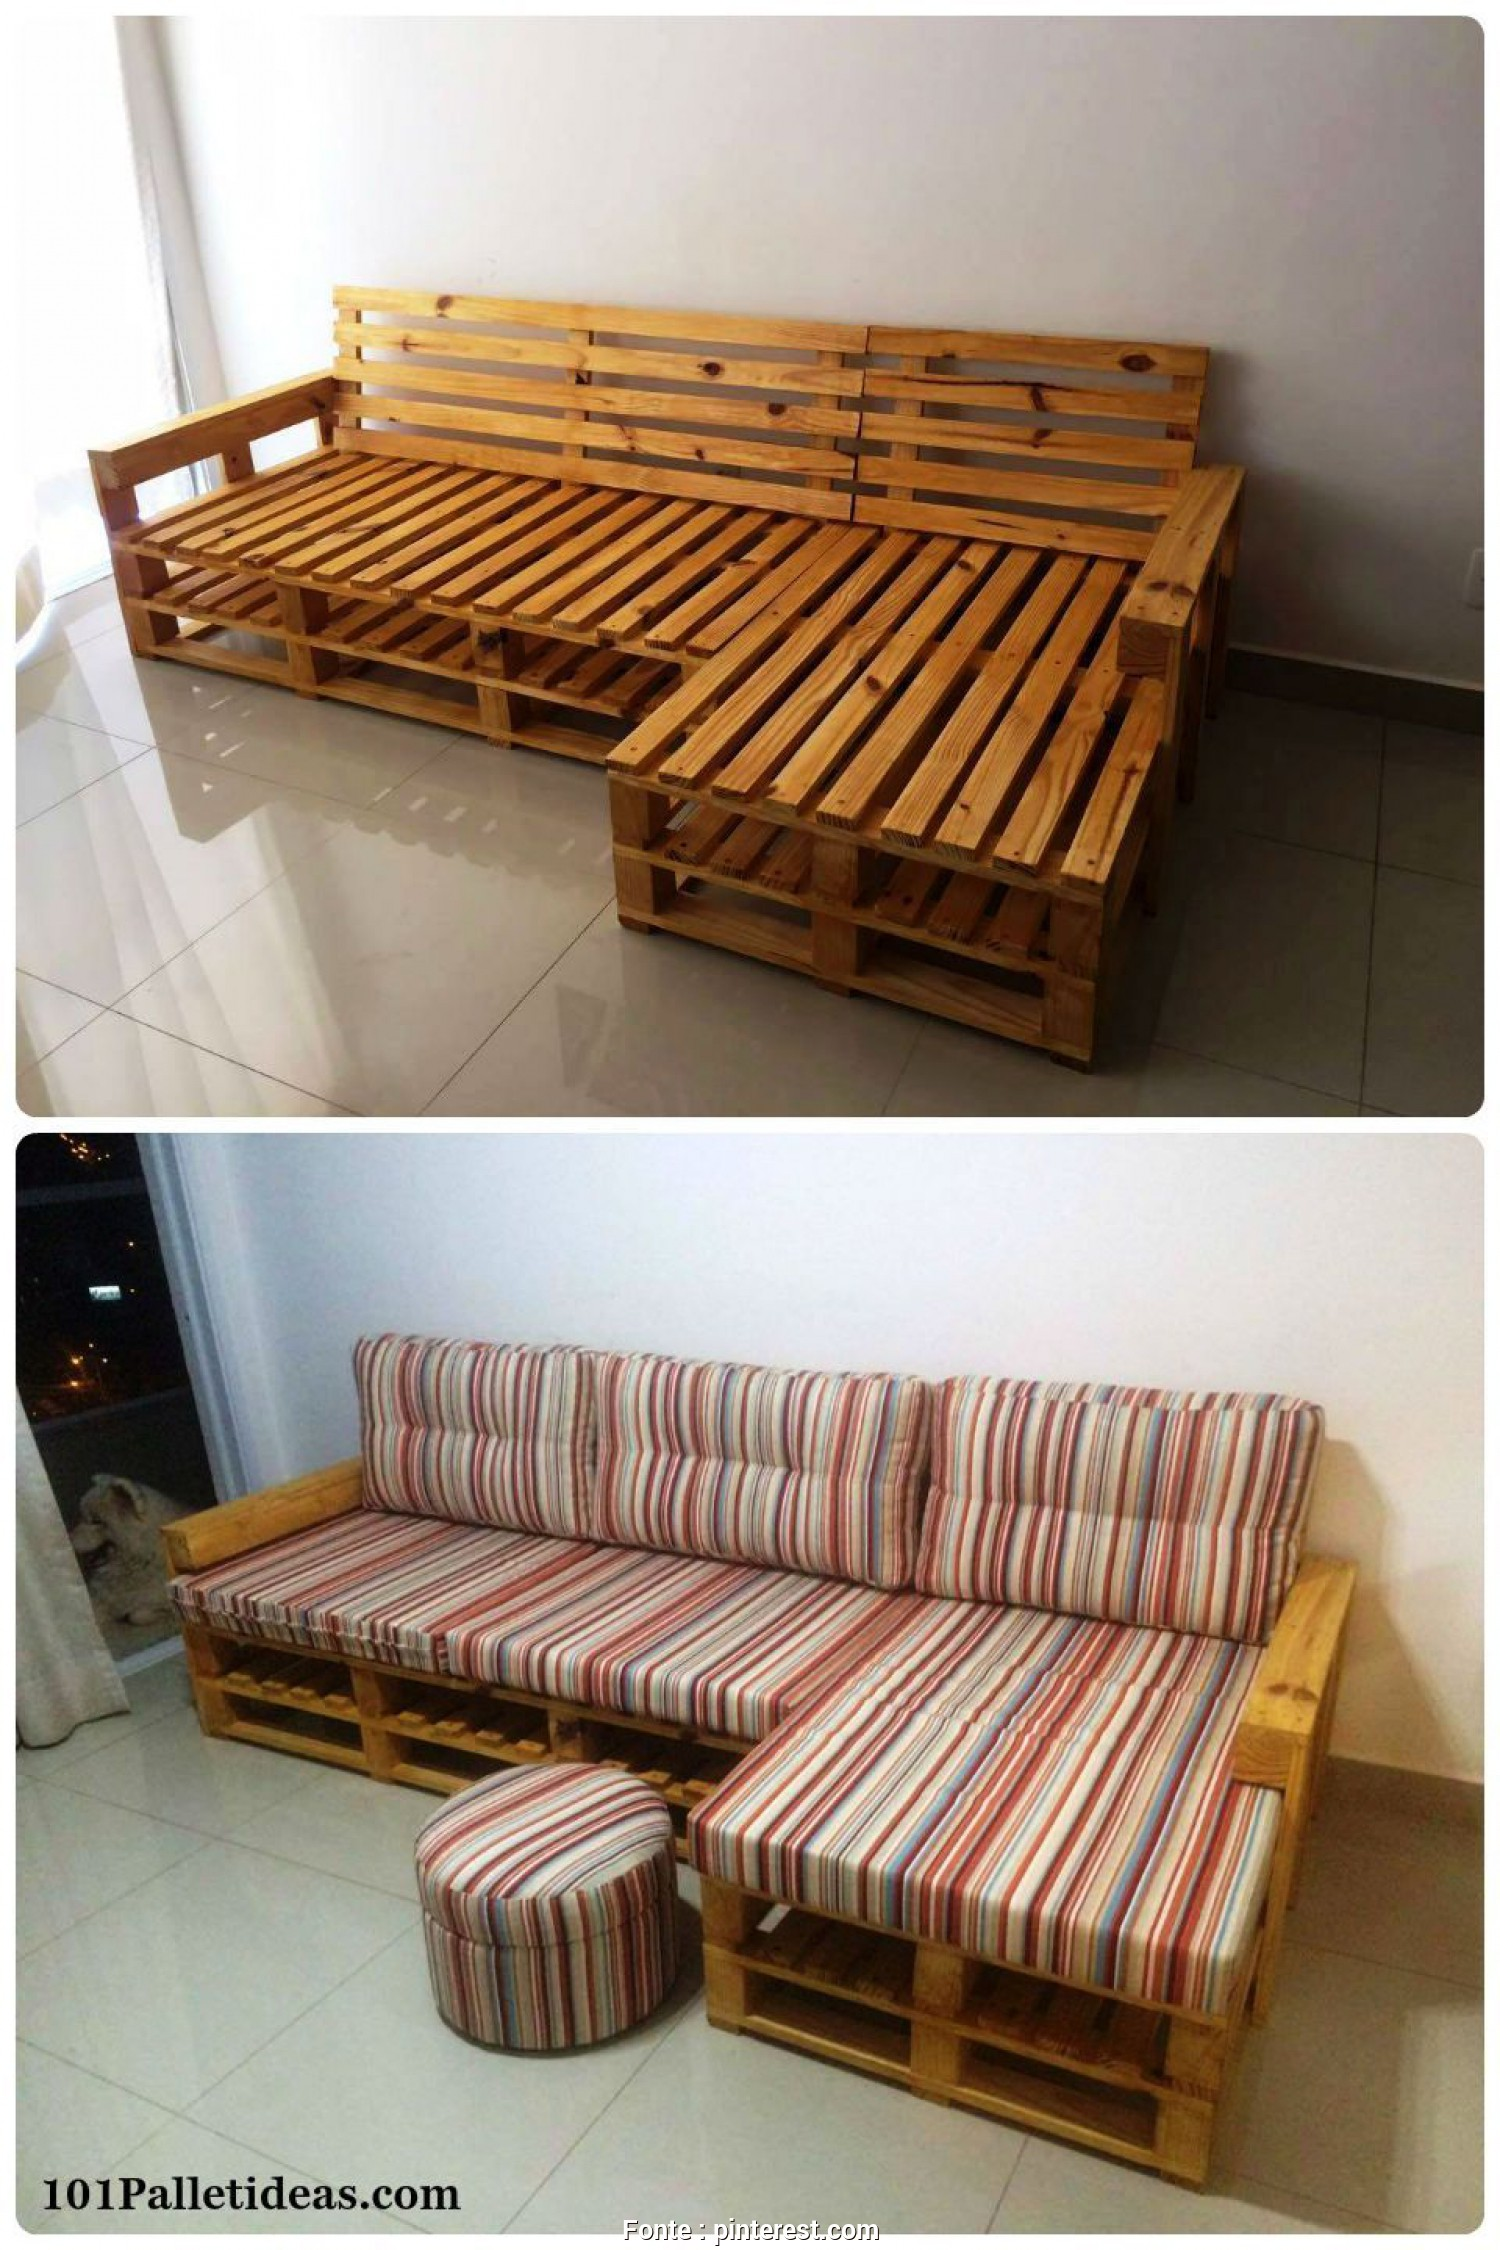 Divani, Pallet Pinterest, Eccezionale Pallet L-Shape Couch Frame, 20 Pallet Ideas, Can, For Your Home, 99 Pallets Más